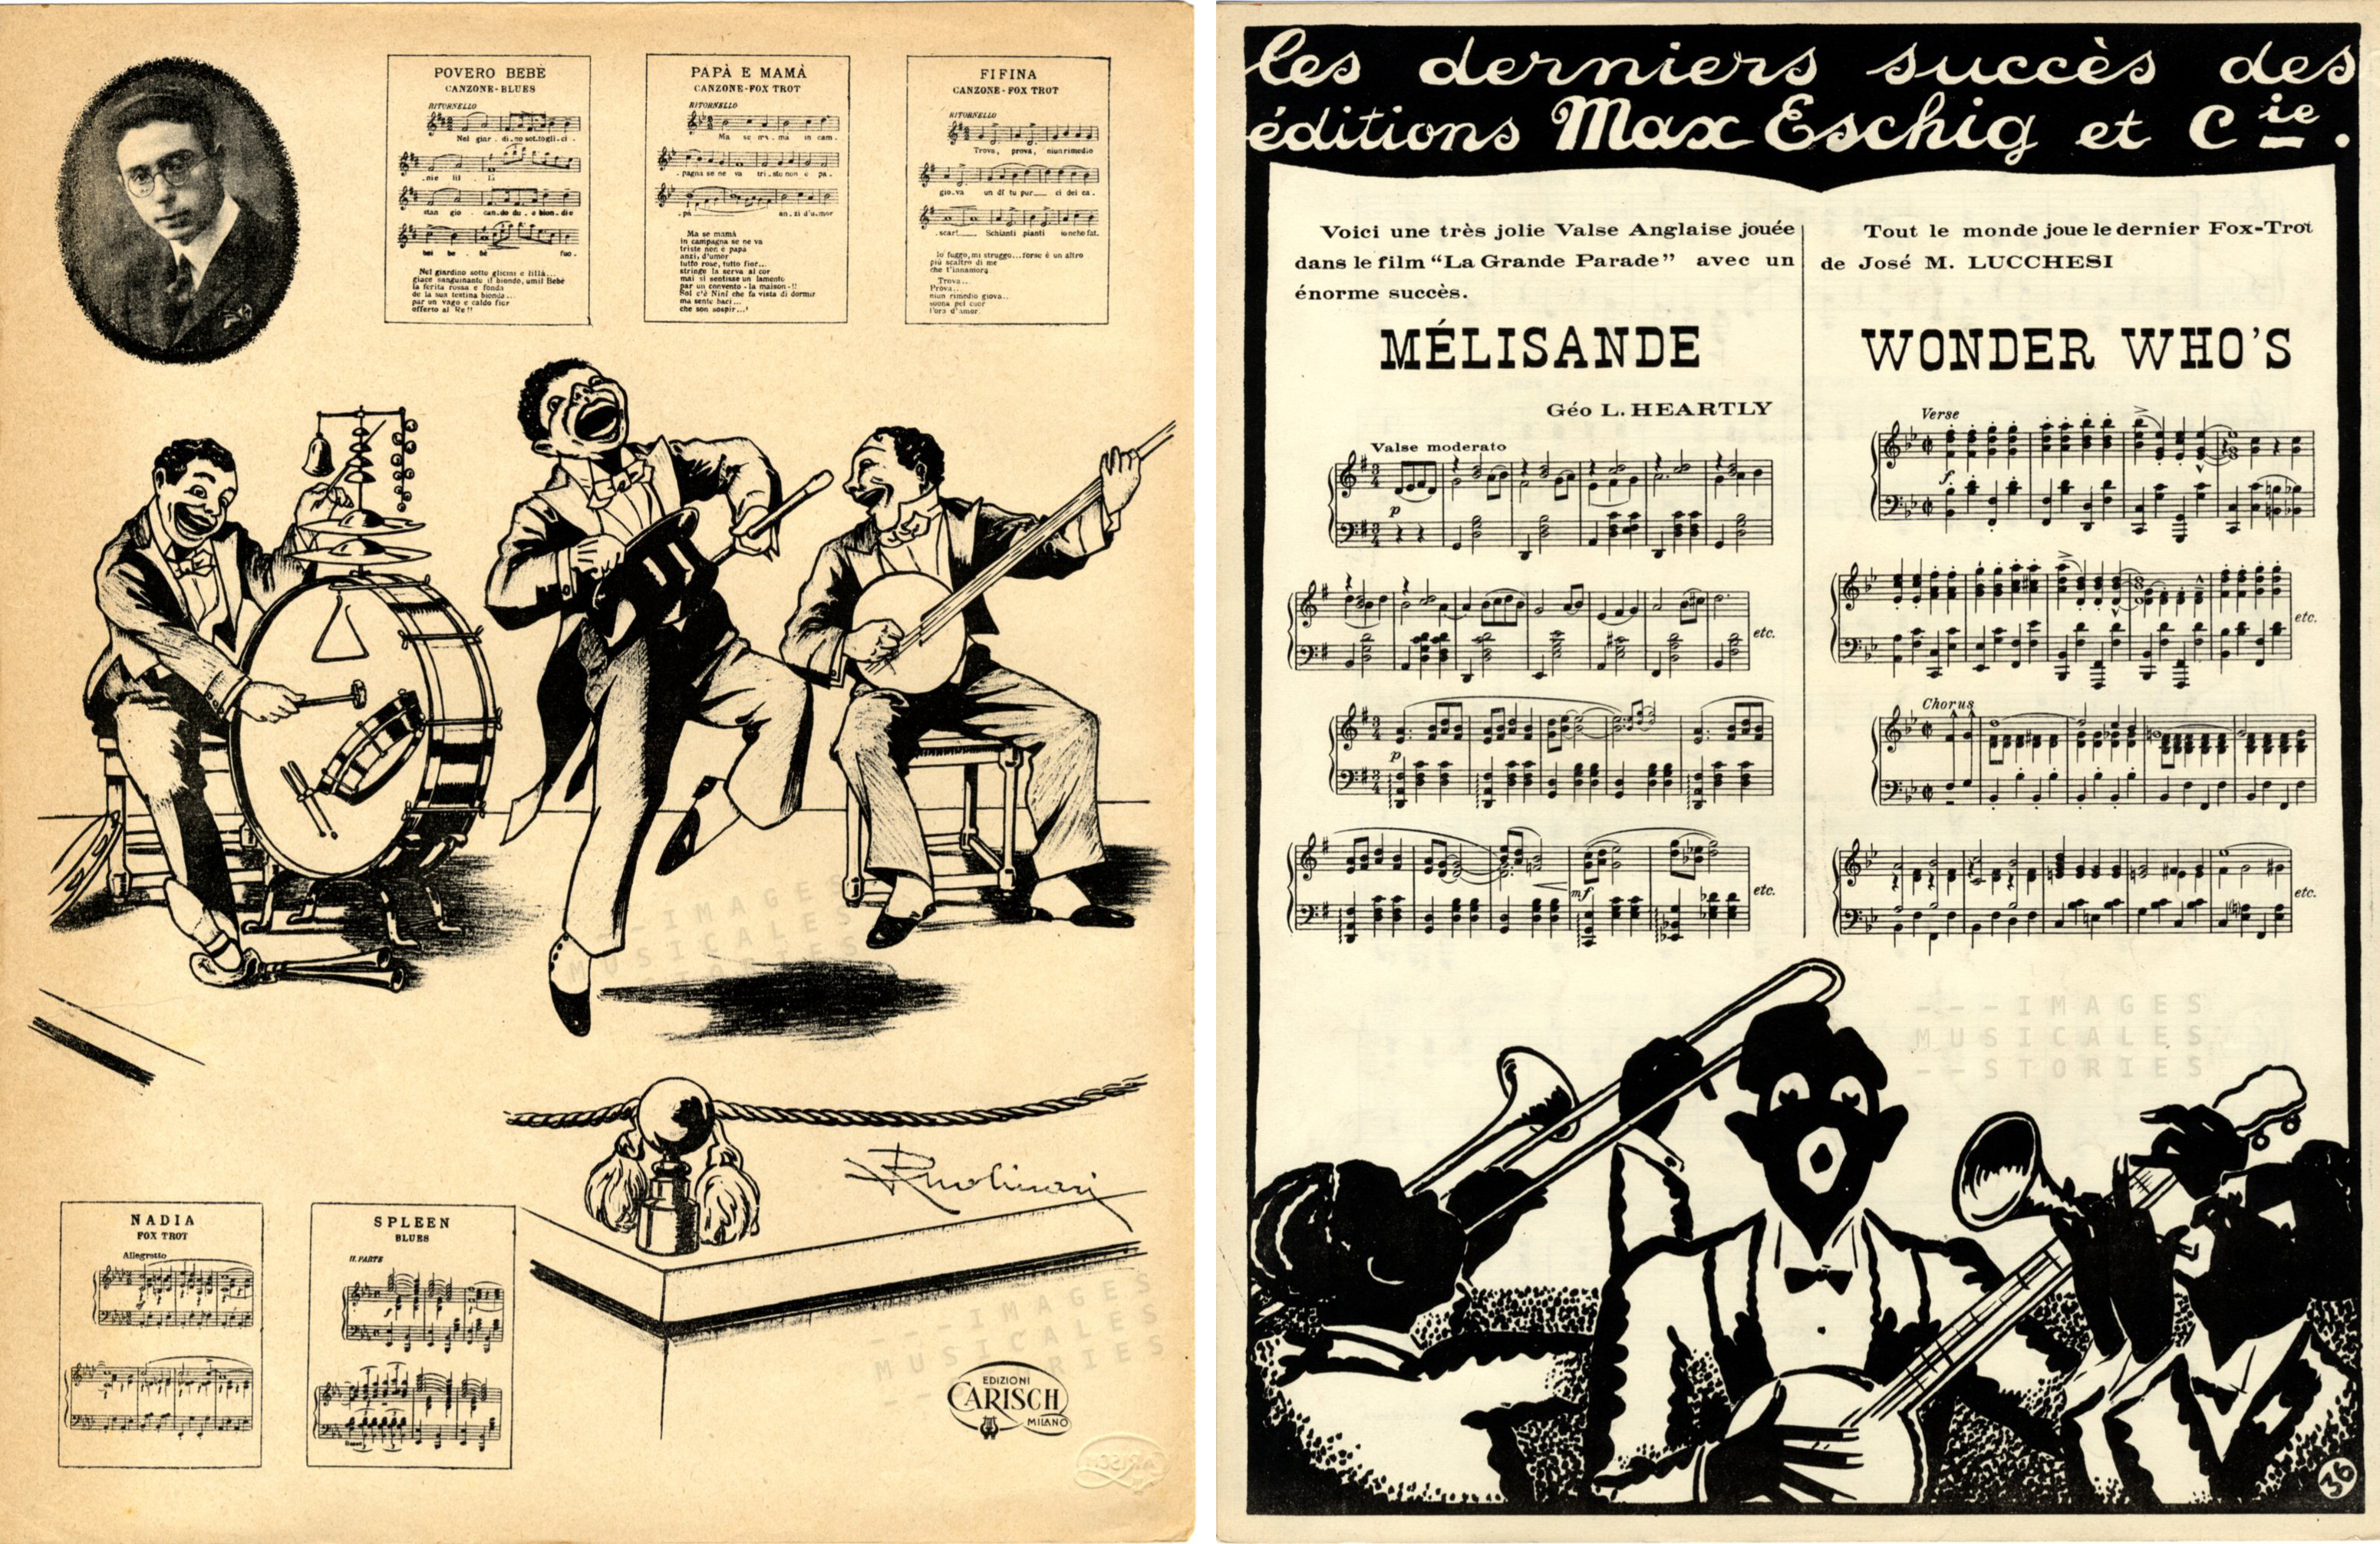 Also the Italian publisher Carisch & C. and the French Max Eschig used to promote their offer of sheet music on the back cover. On the left a lively jazzband drawn by Ruolinari (s.d.), on the right another jazzband with stereotyped black musicians (illustrator and date unknown).